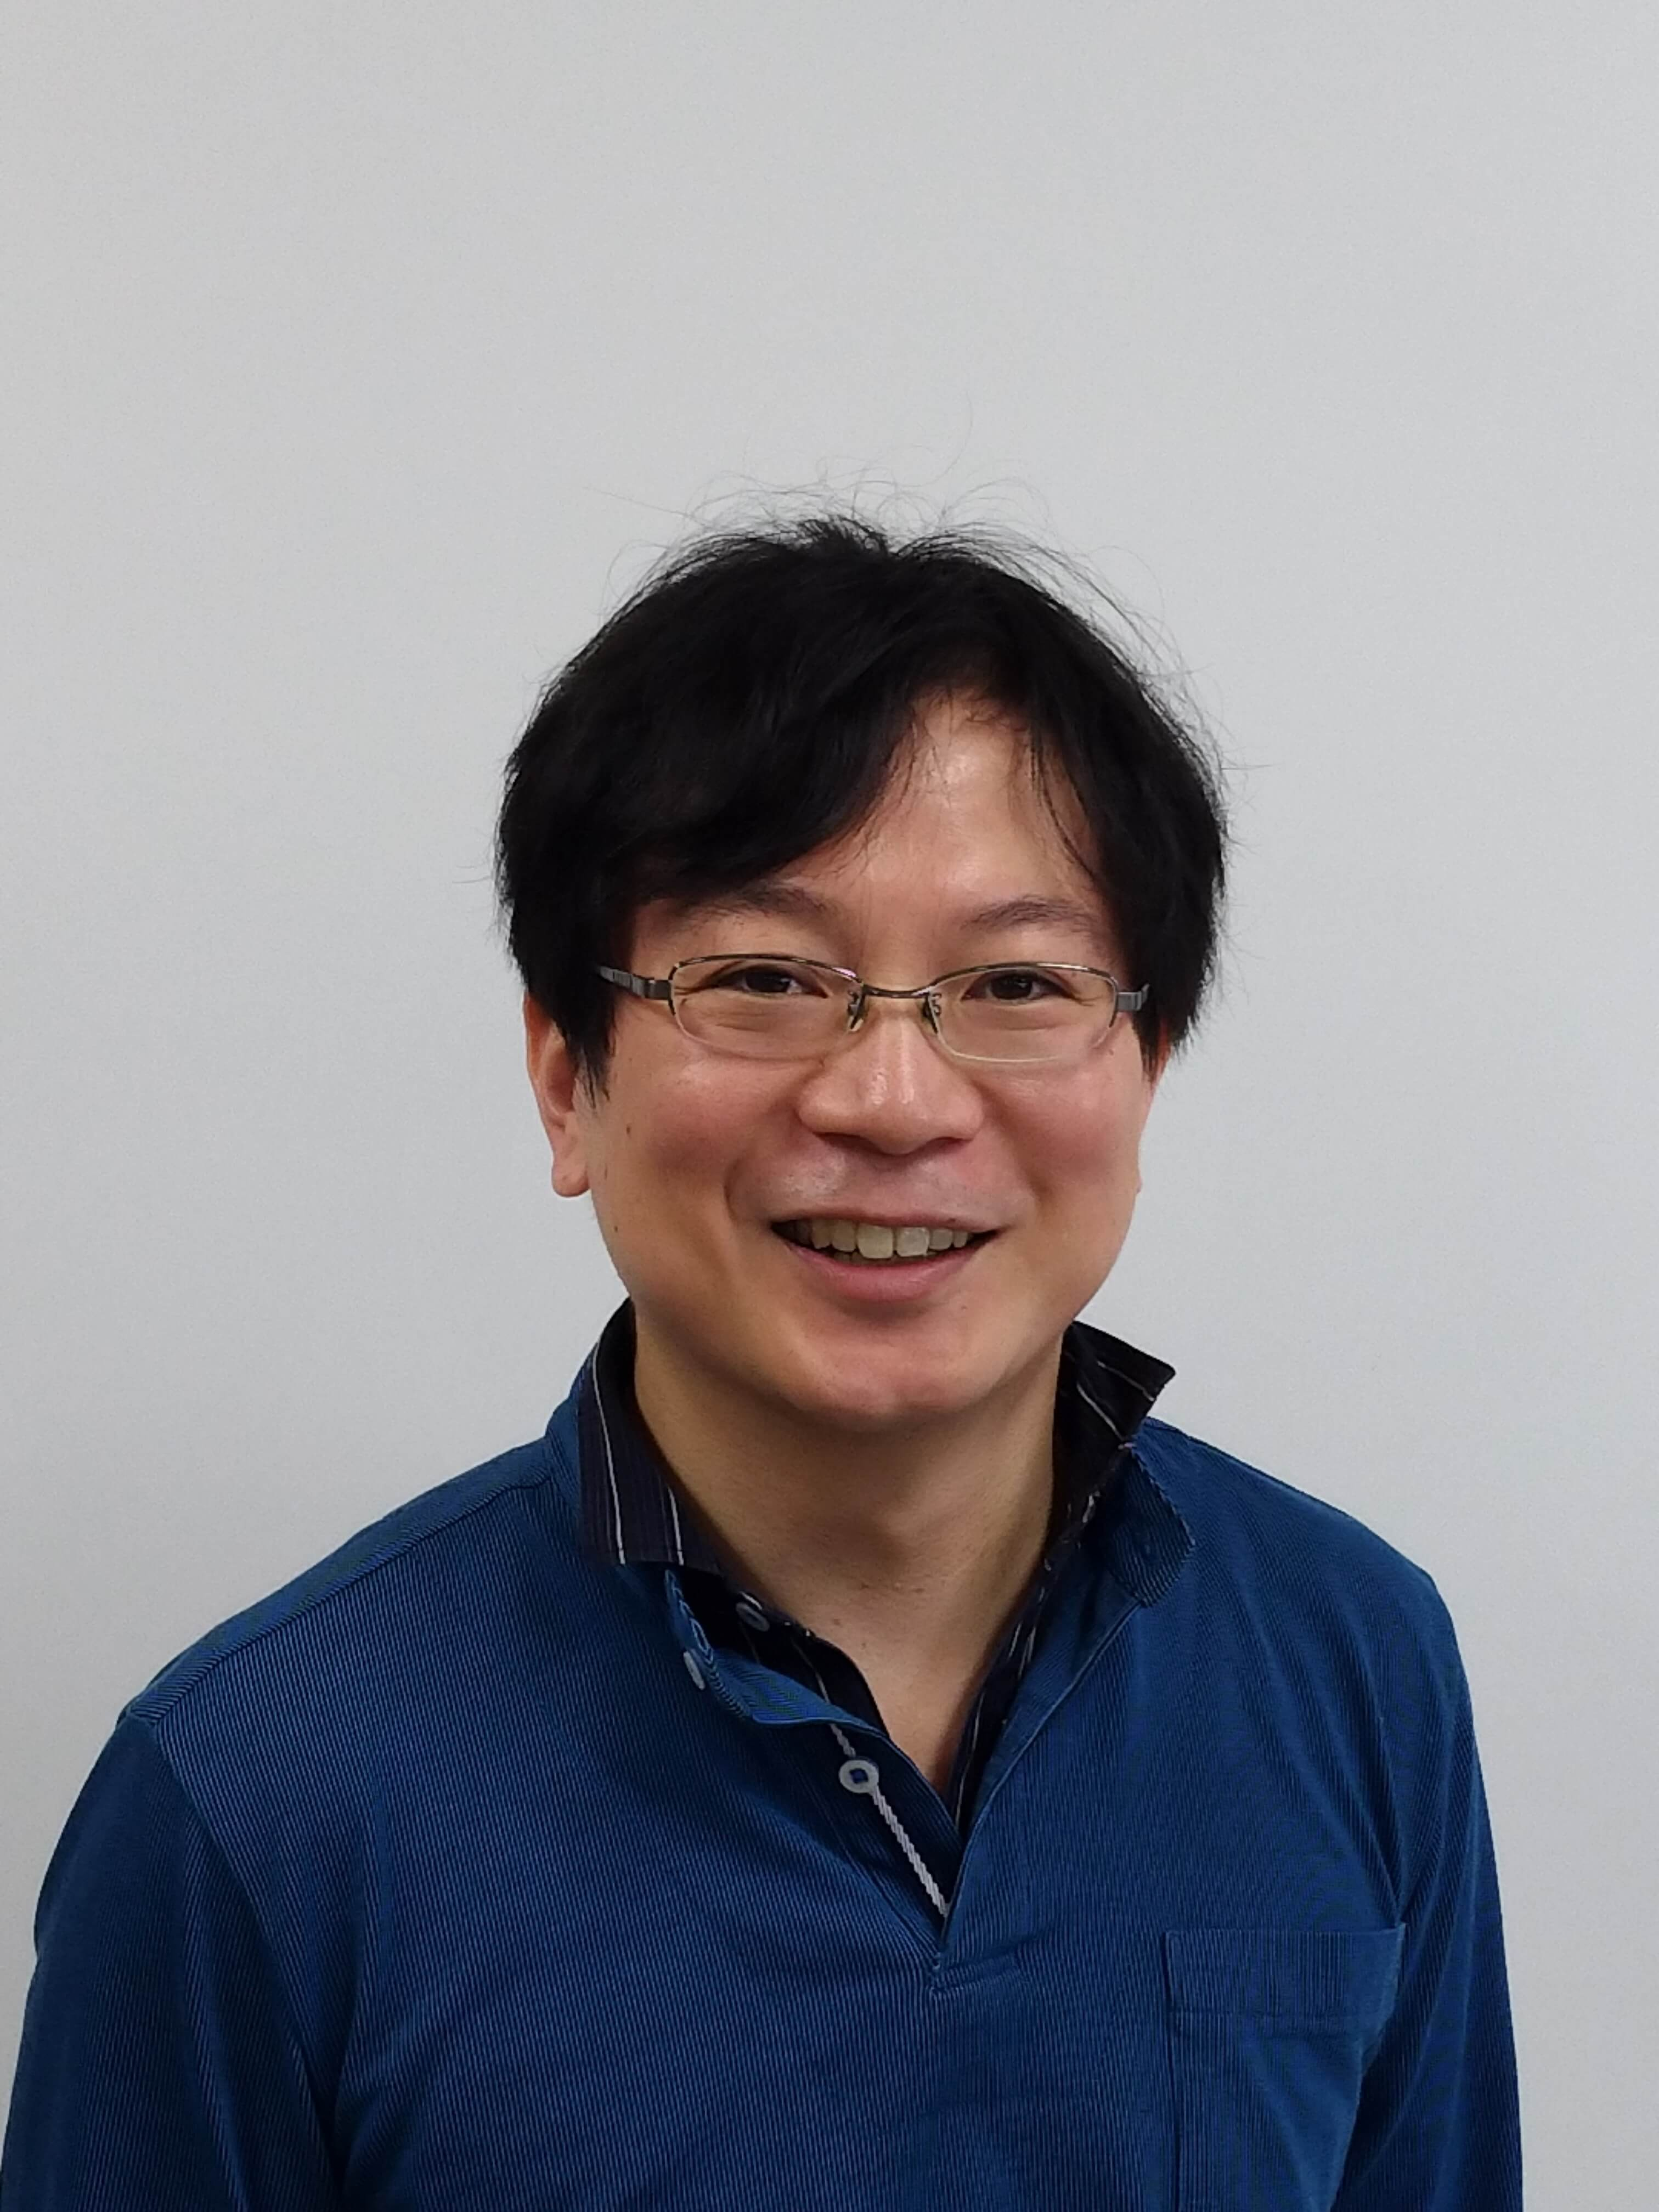 Ken Natsuga, MD, PhD